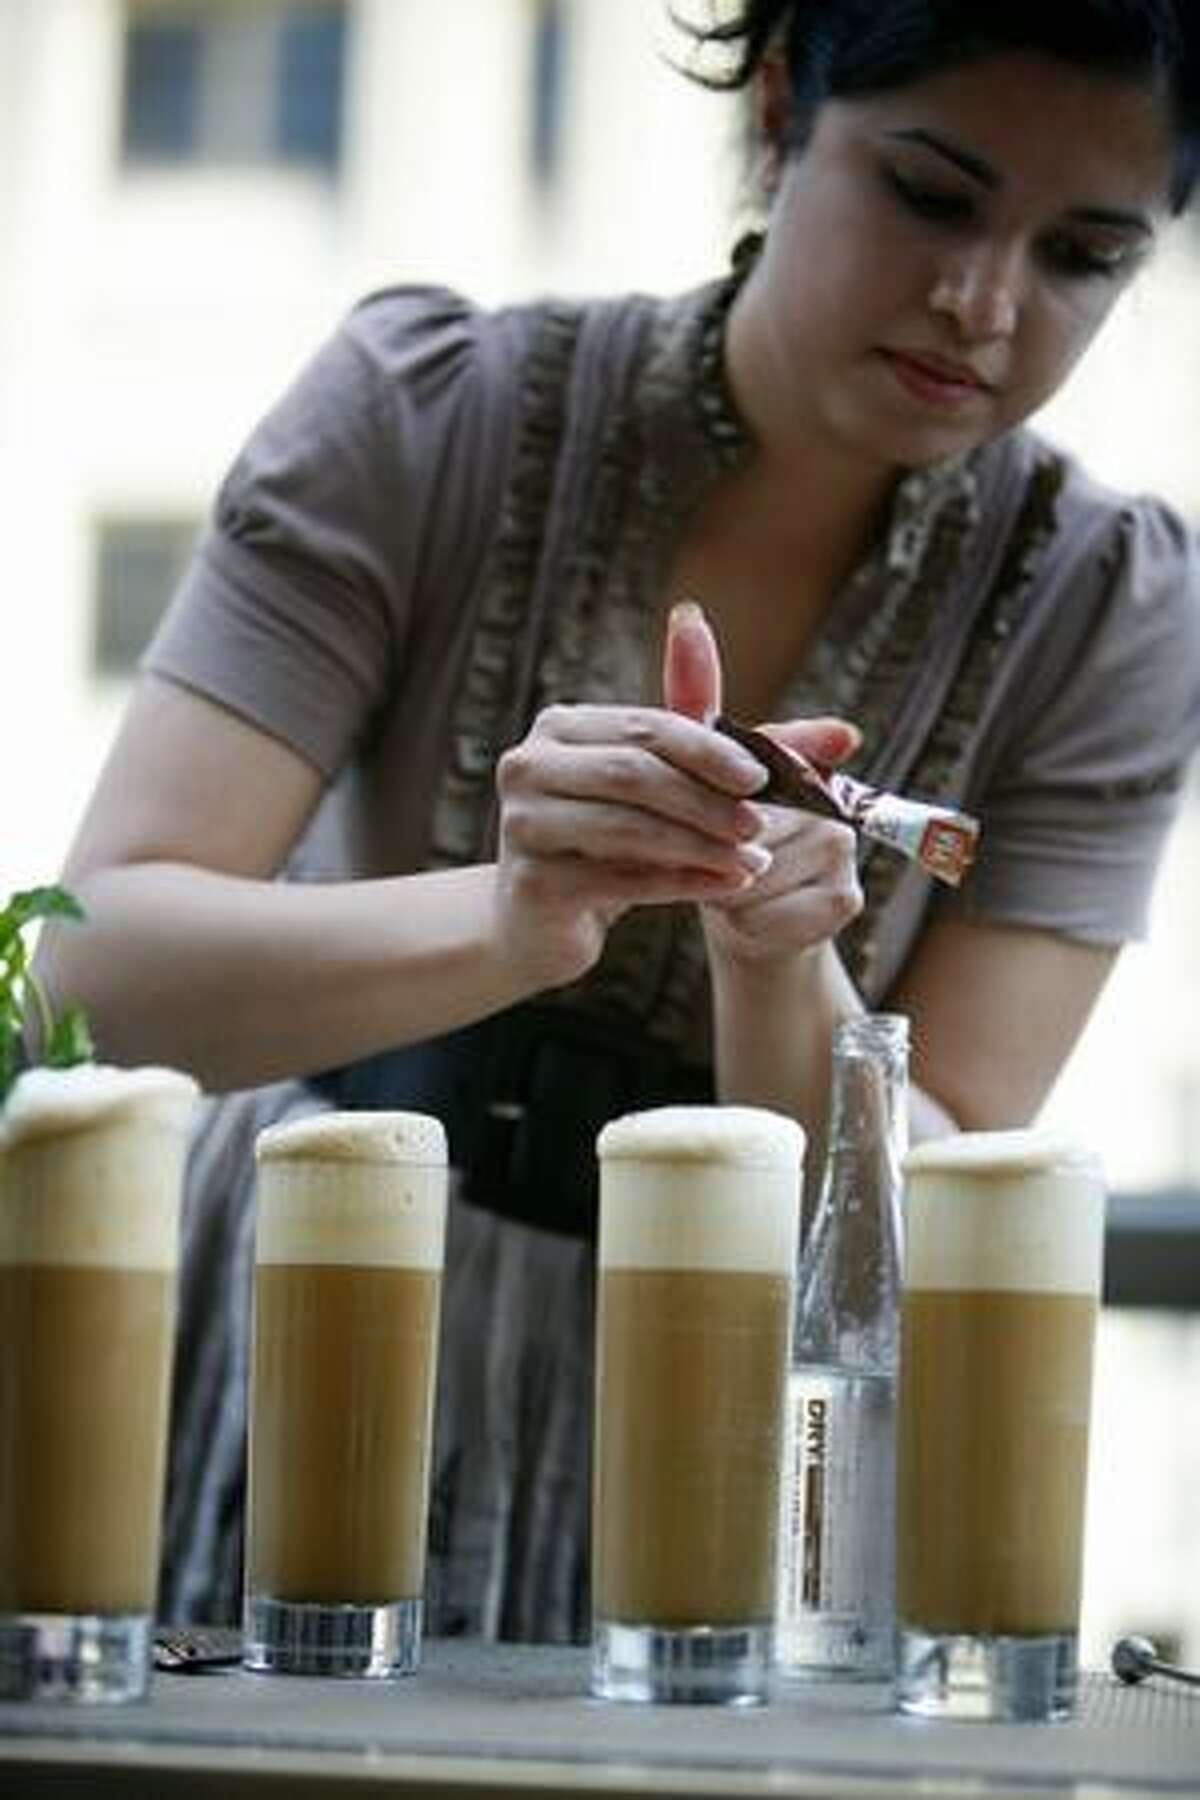 Anu Apte of Rob Roy in Belltown sprinkles Starbucks VIA Ready Brew coffee onto a drink during a bartender competition at Hotel 1000 where the drink makers used Starbucks VIA Ready Brew coffee.